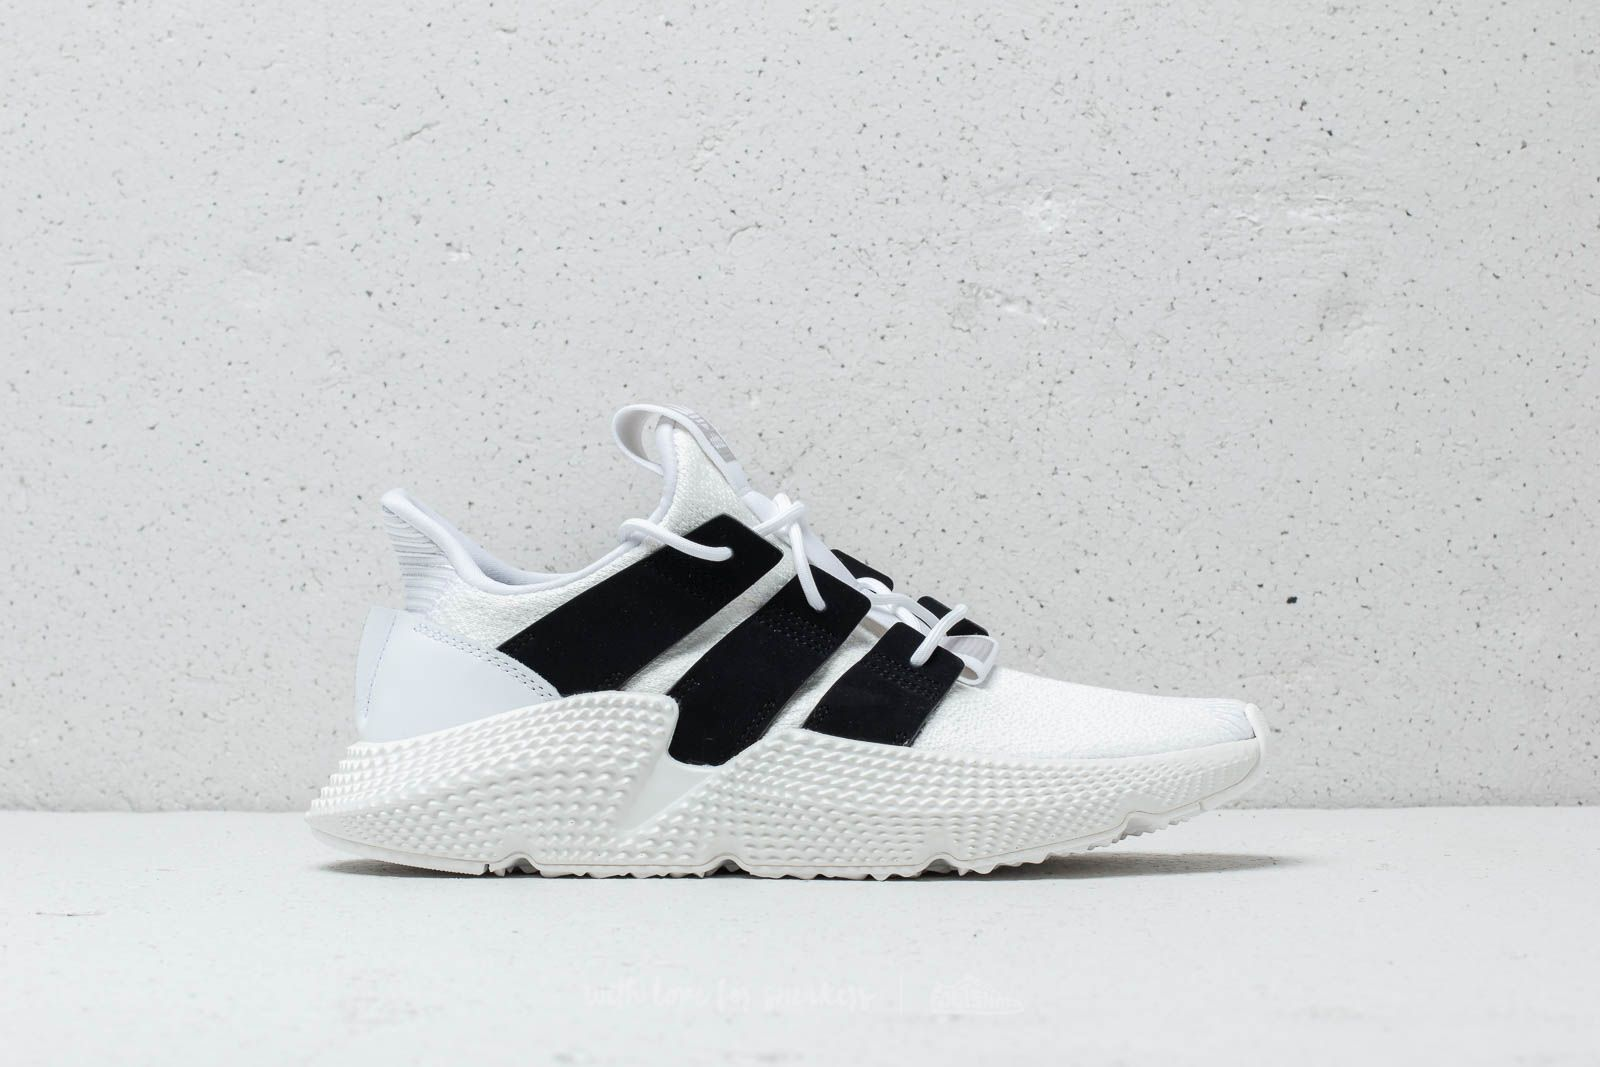 on sale 7d4ea 476bf adidas Prophere Ftw White Core Black Shock Lime at a great price £127